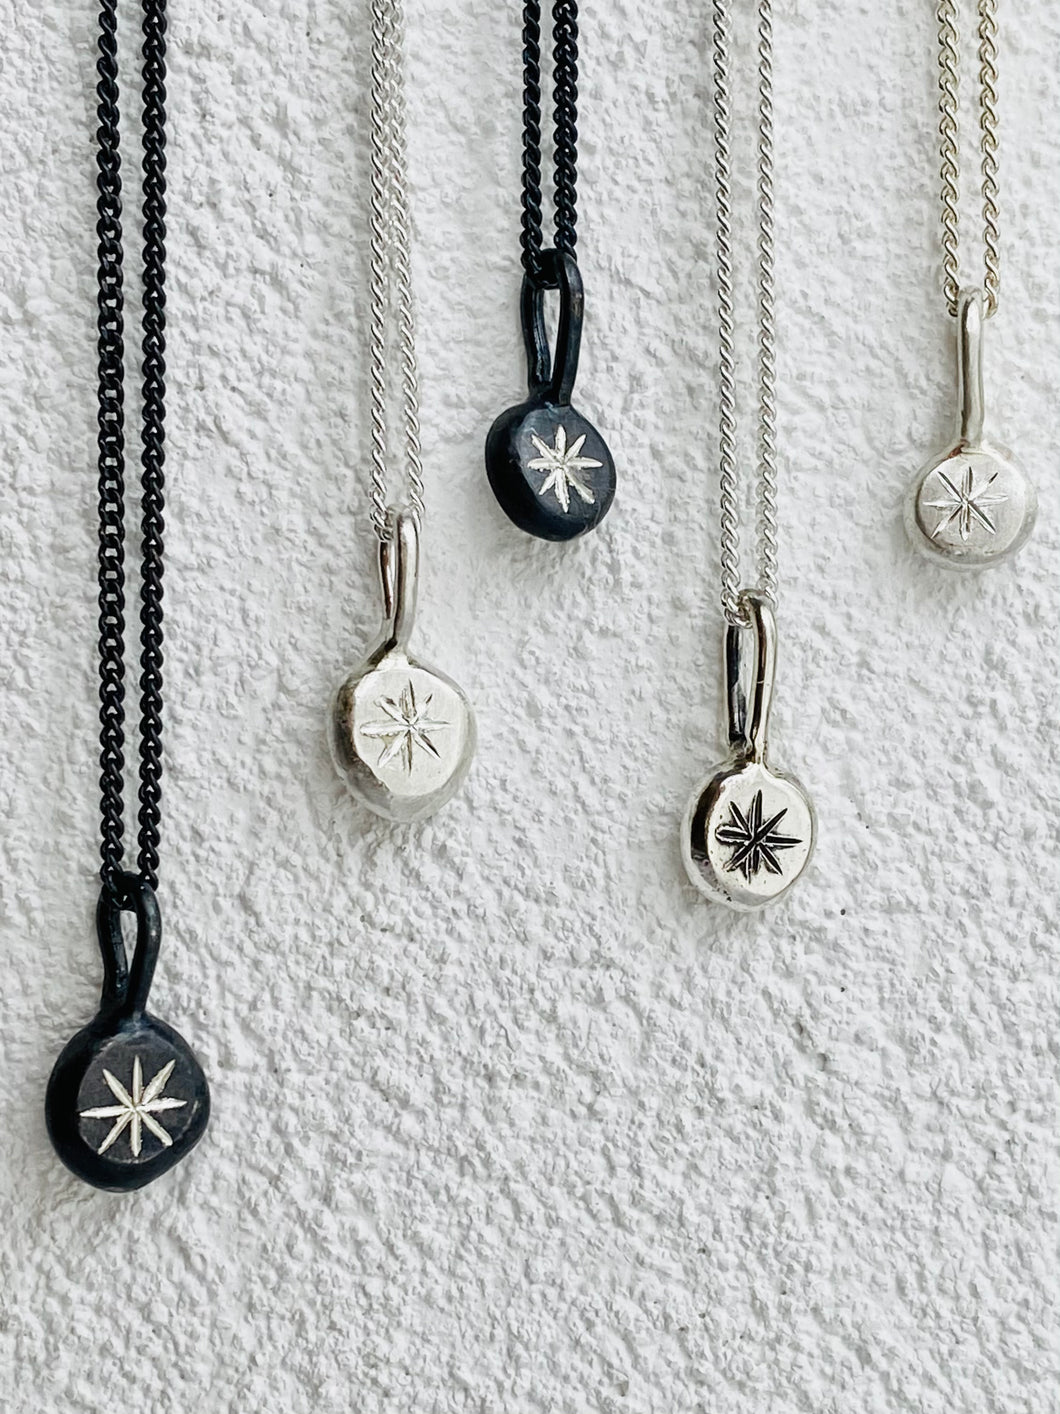 Guiding Star Amulet Pendant & chain